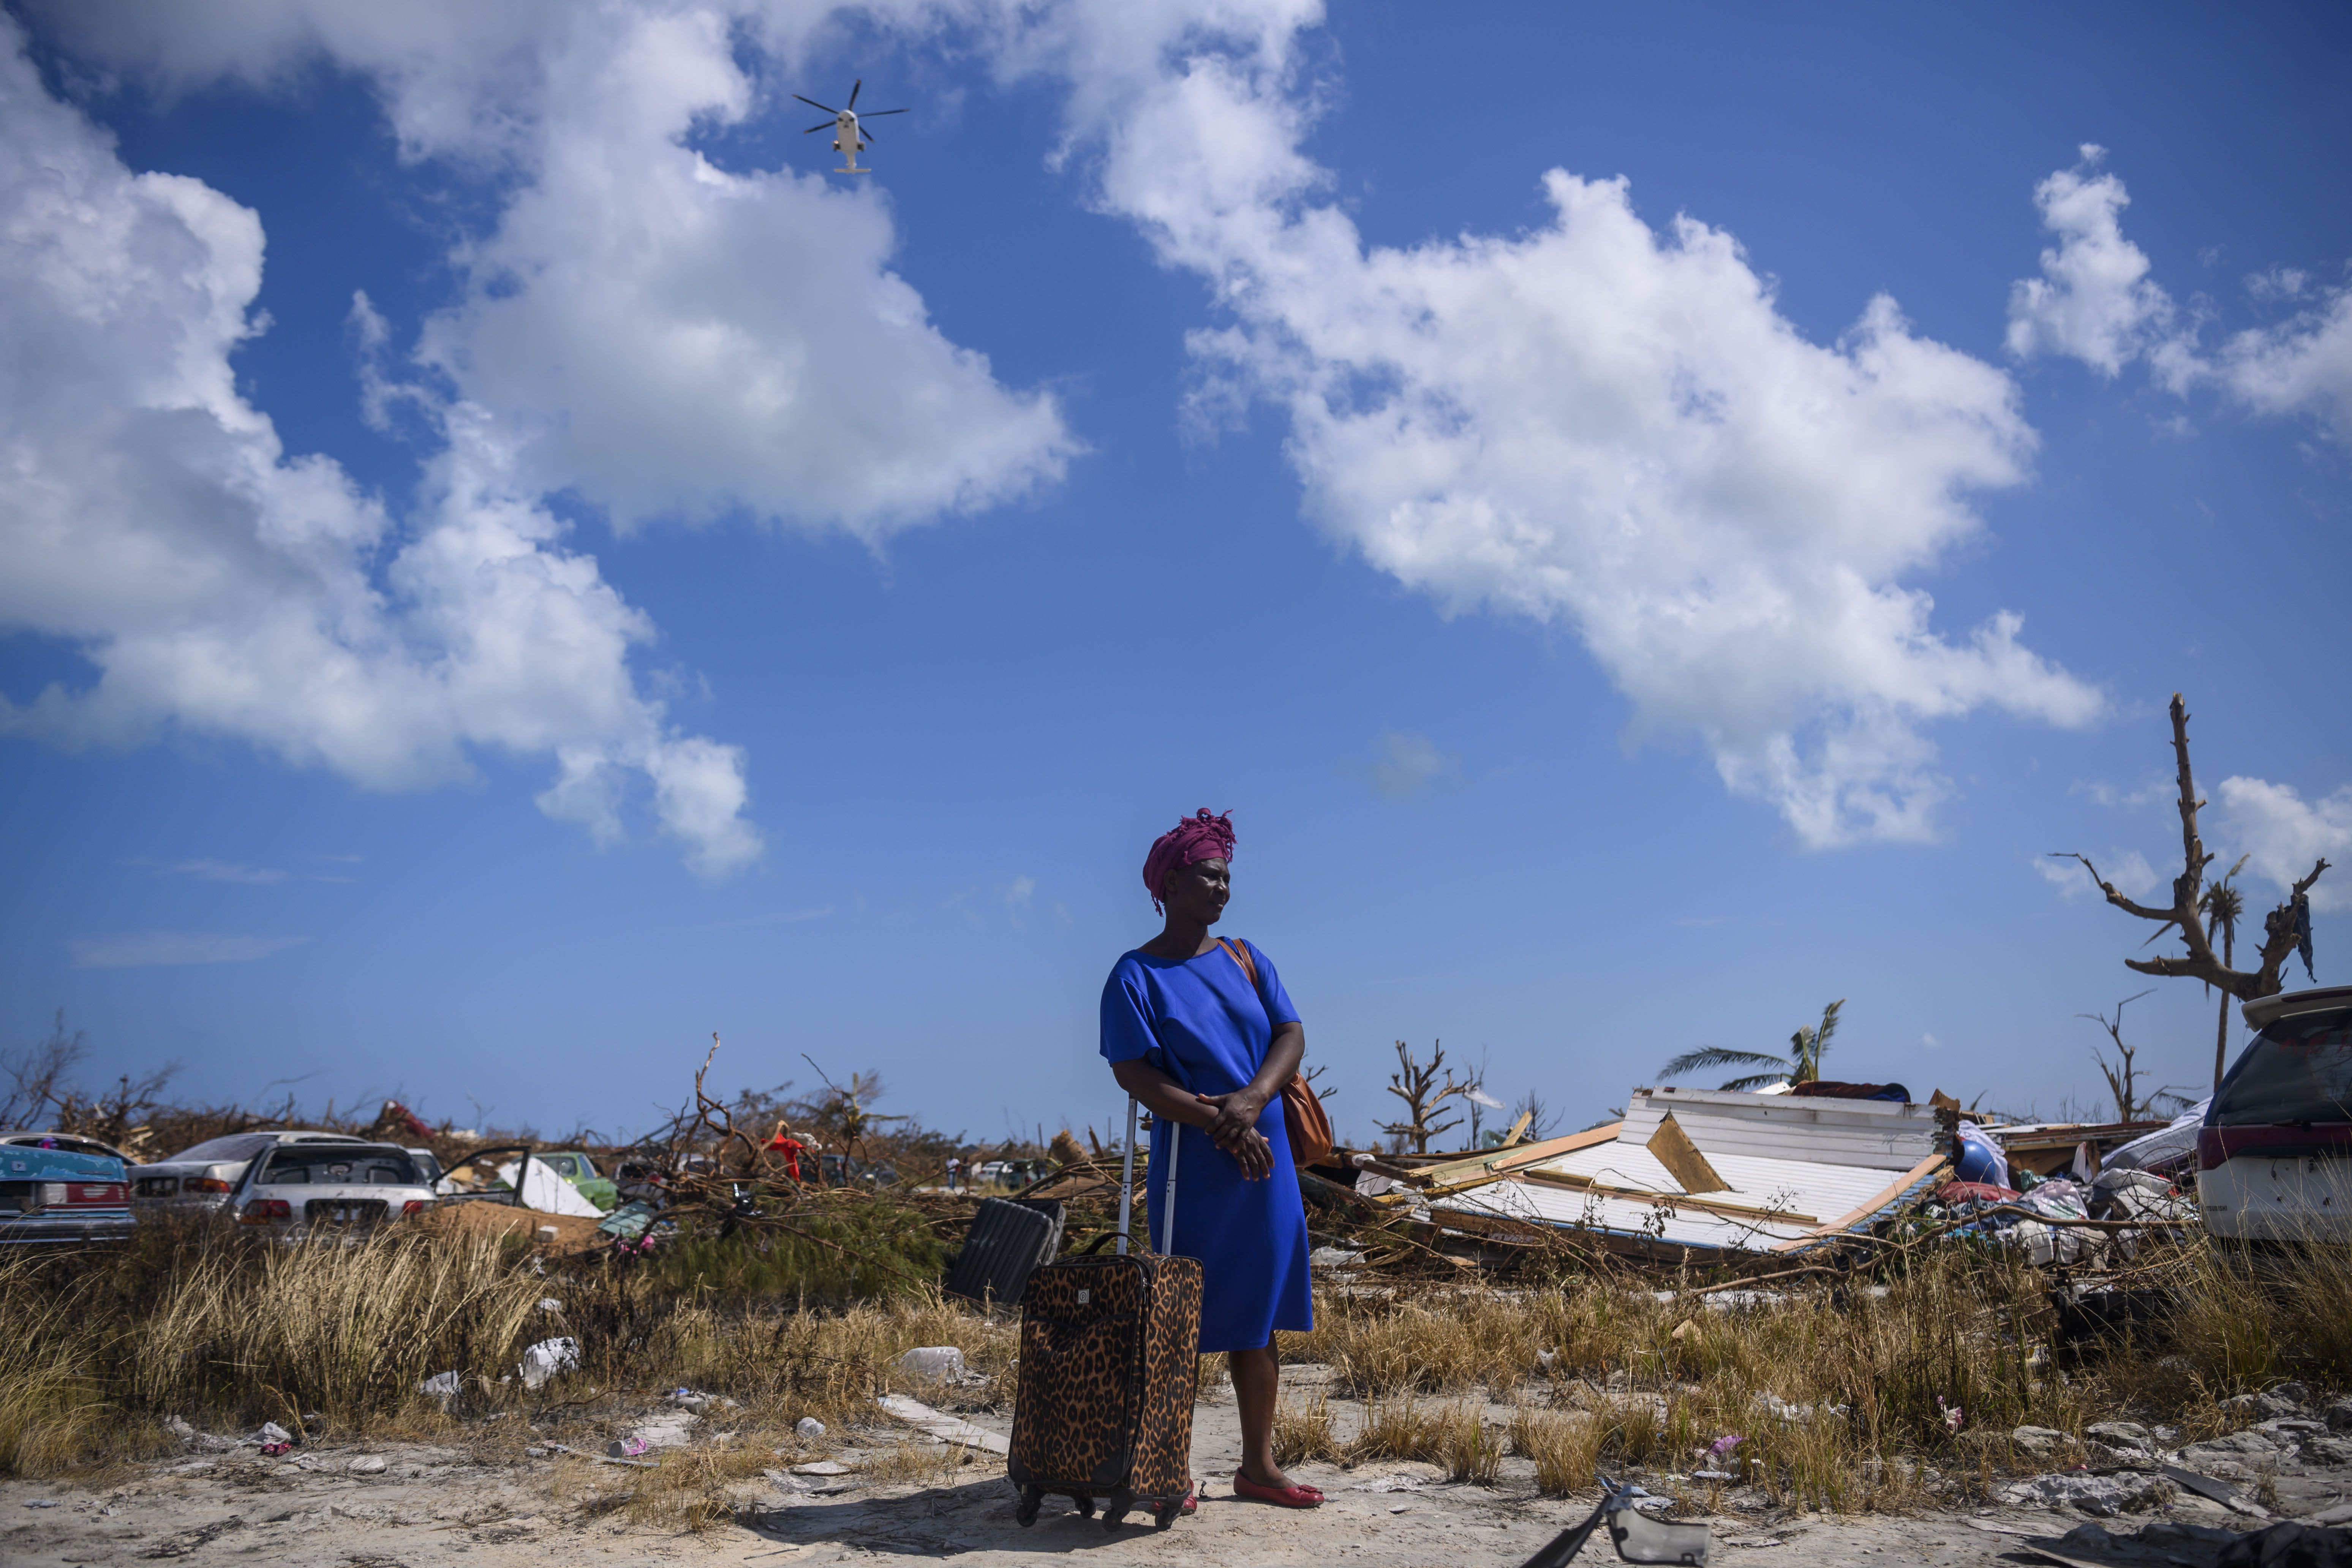 Dejani Louistan, who was displaced by Hurricane Dorian, stands with the only belongings she managed to salvage